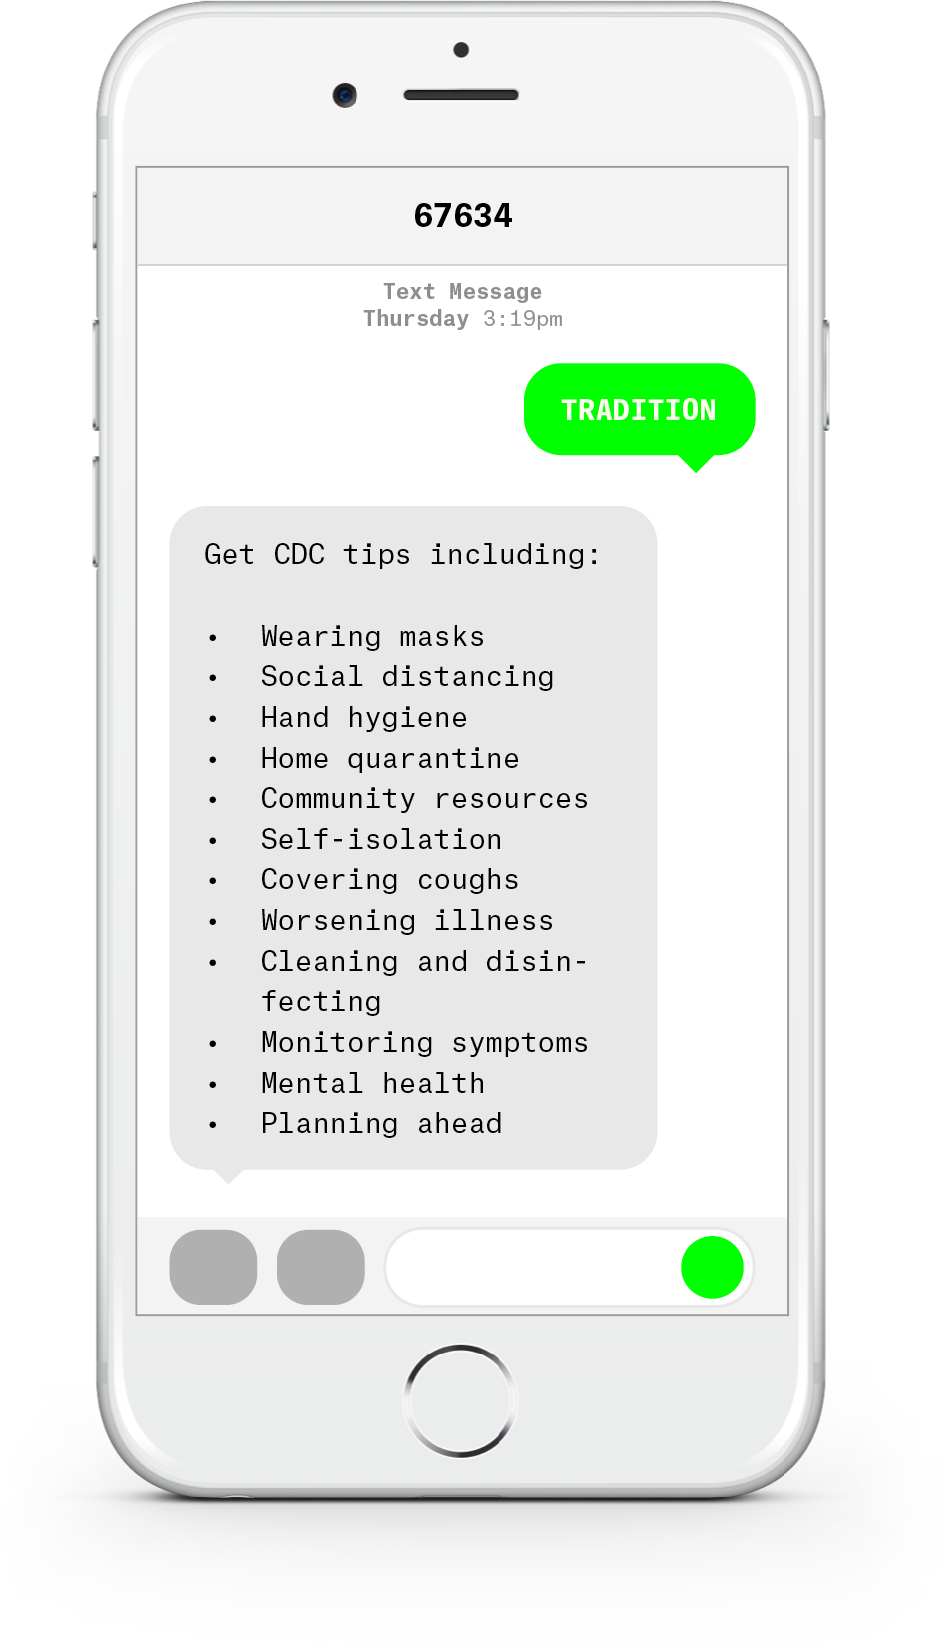 White iPhone with text messages about COVID-19 from Health Tradition.